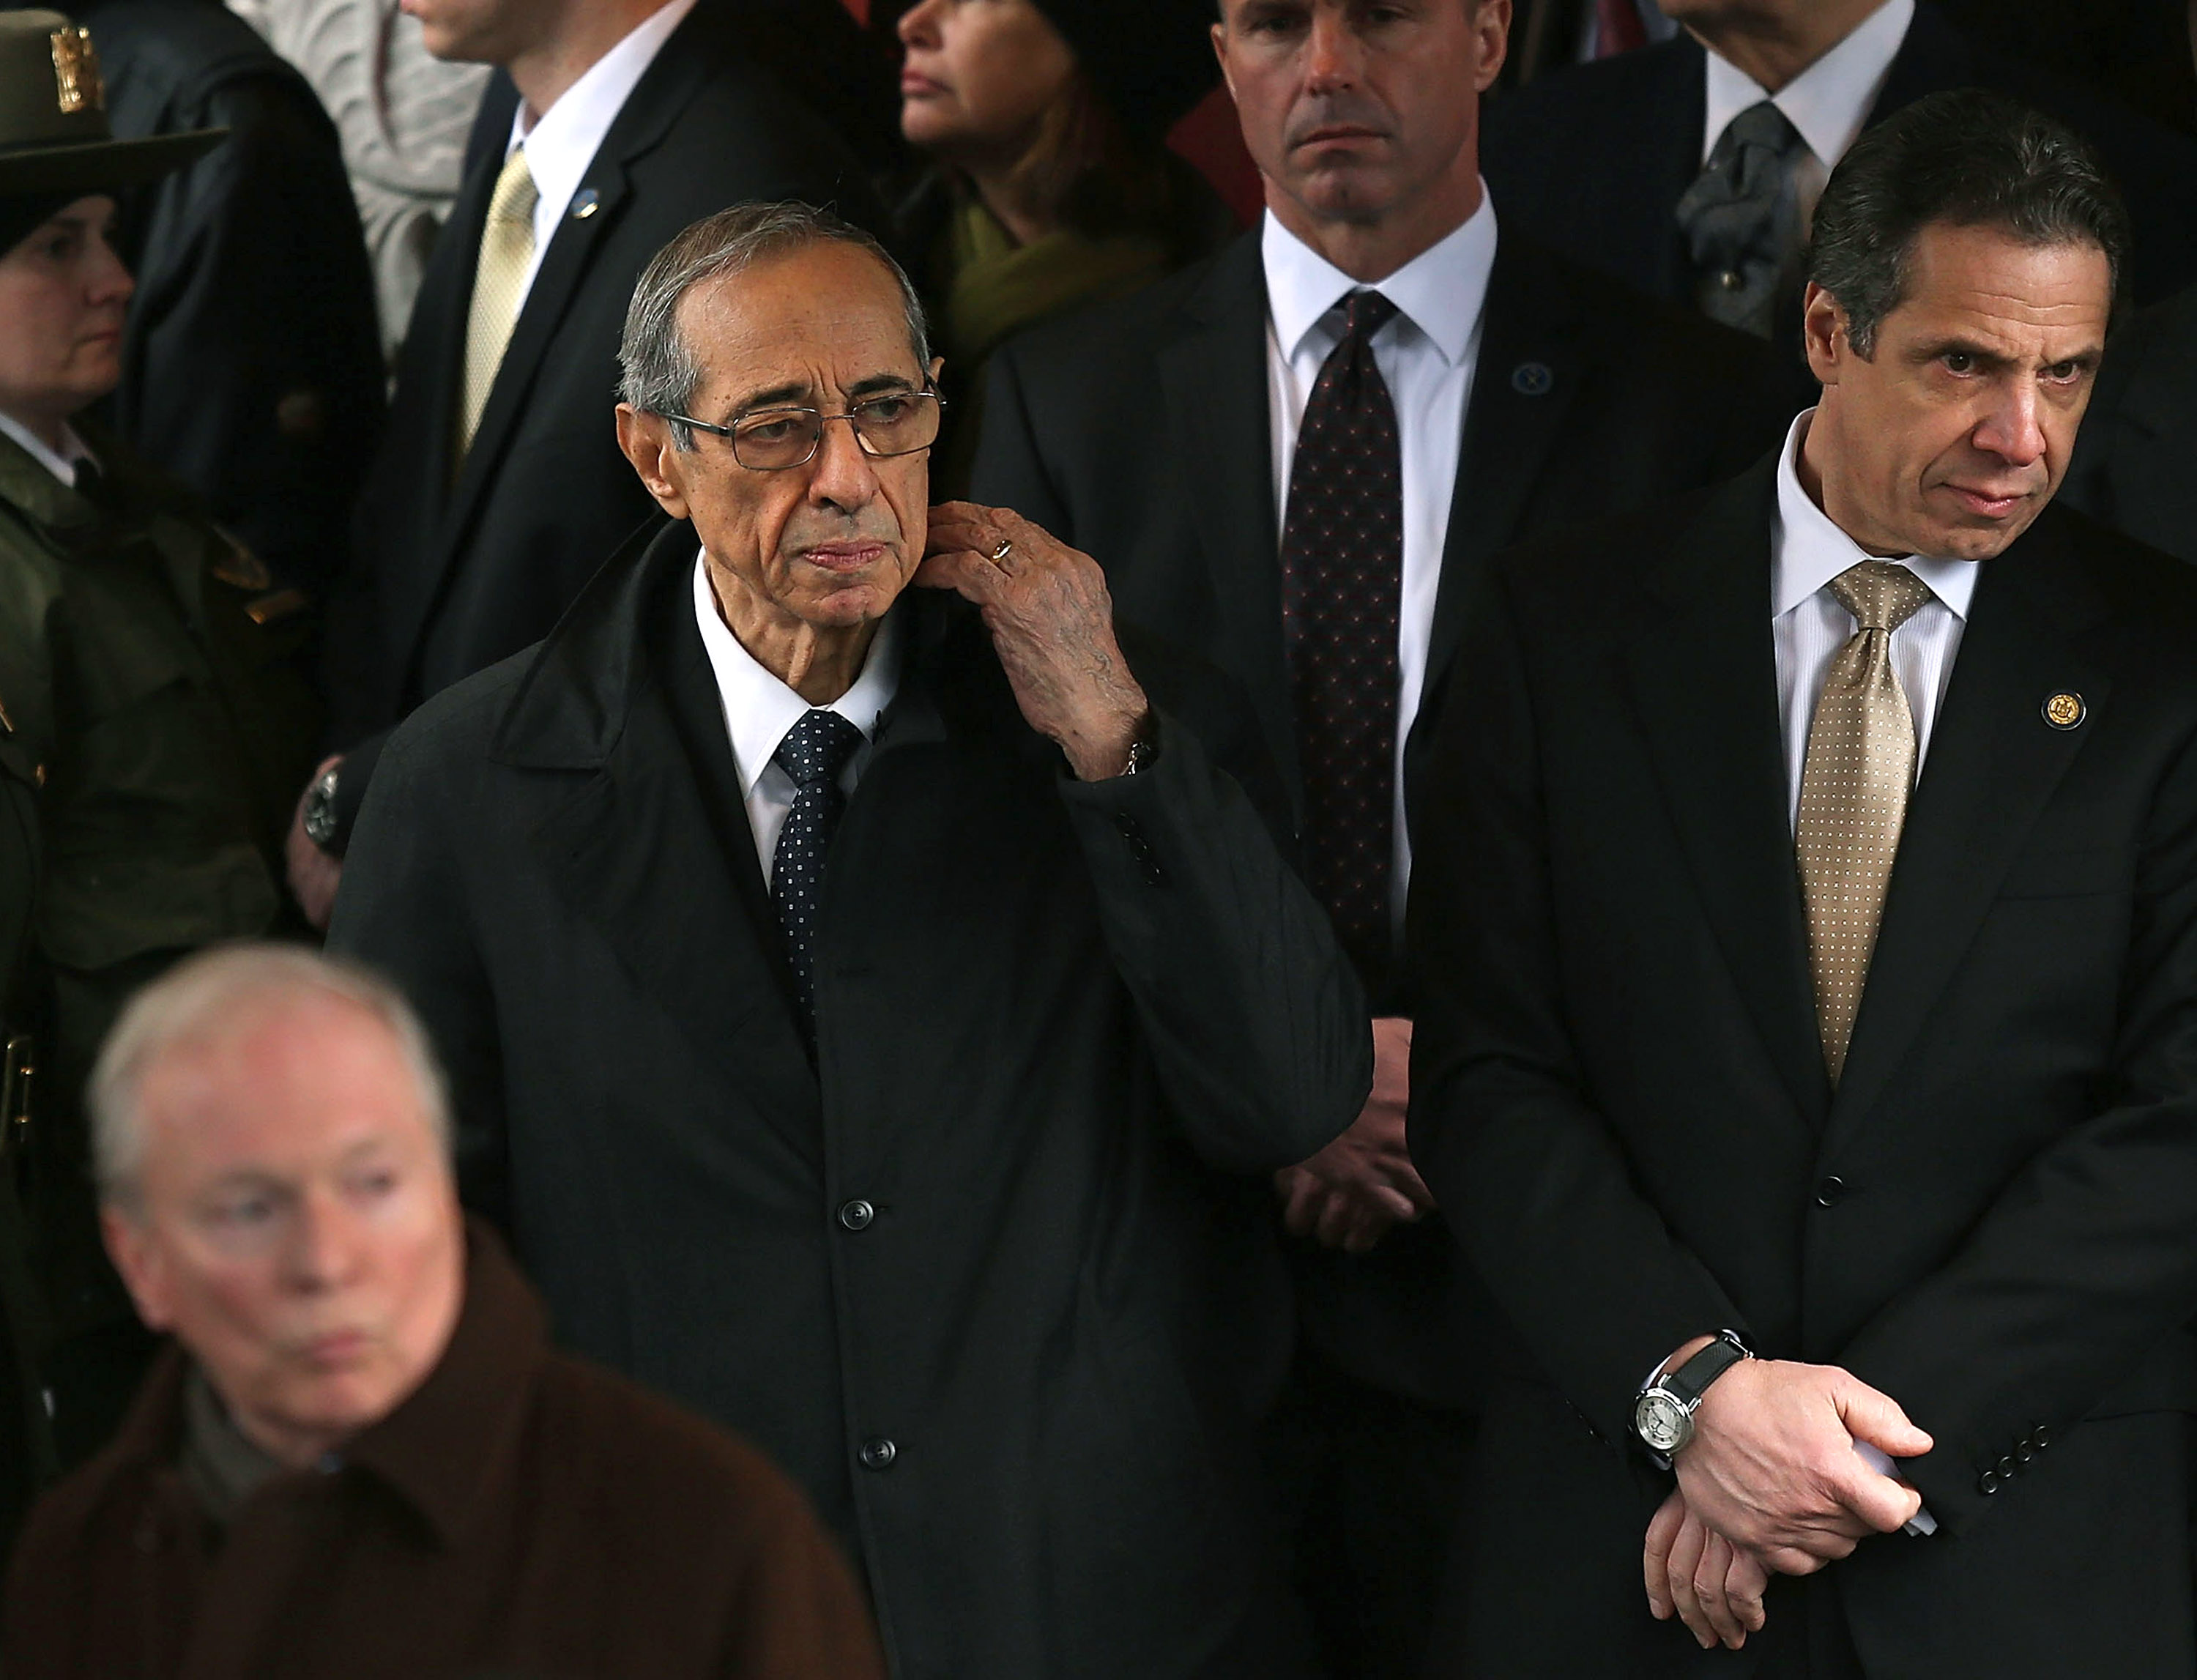 Former Gov. Mario Cuomo, left, with his son Gov. Andrew Cuomo at former Mayor Ed Koch's funeral in 2013 (Photo: Spencer Platt/Getty Images).